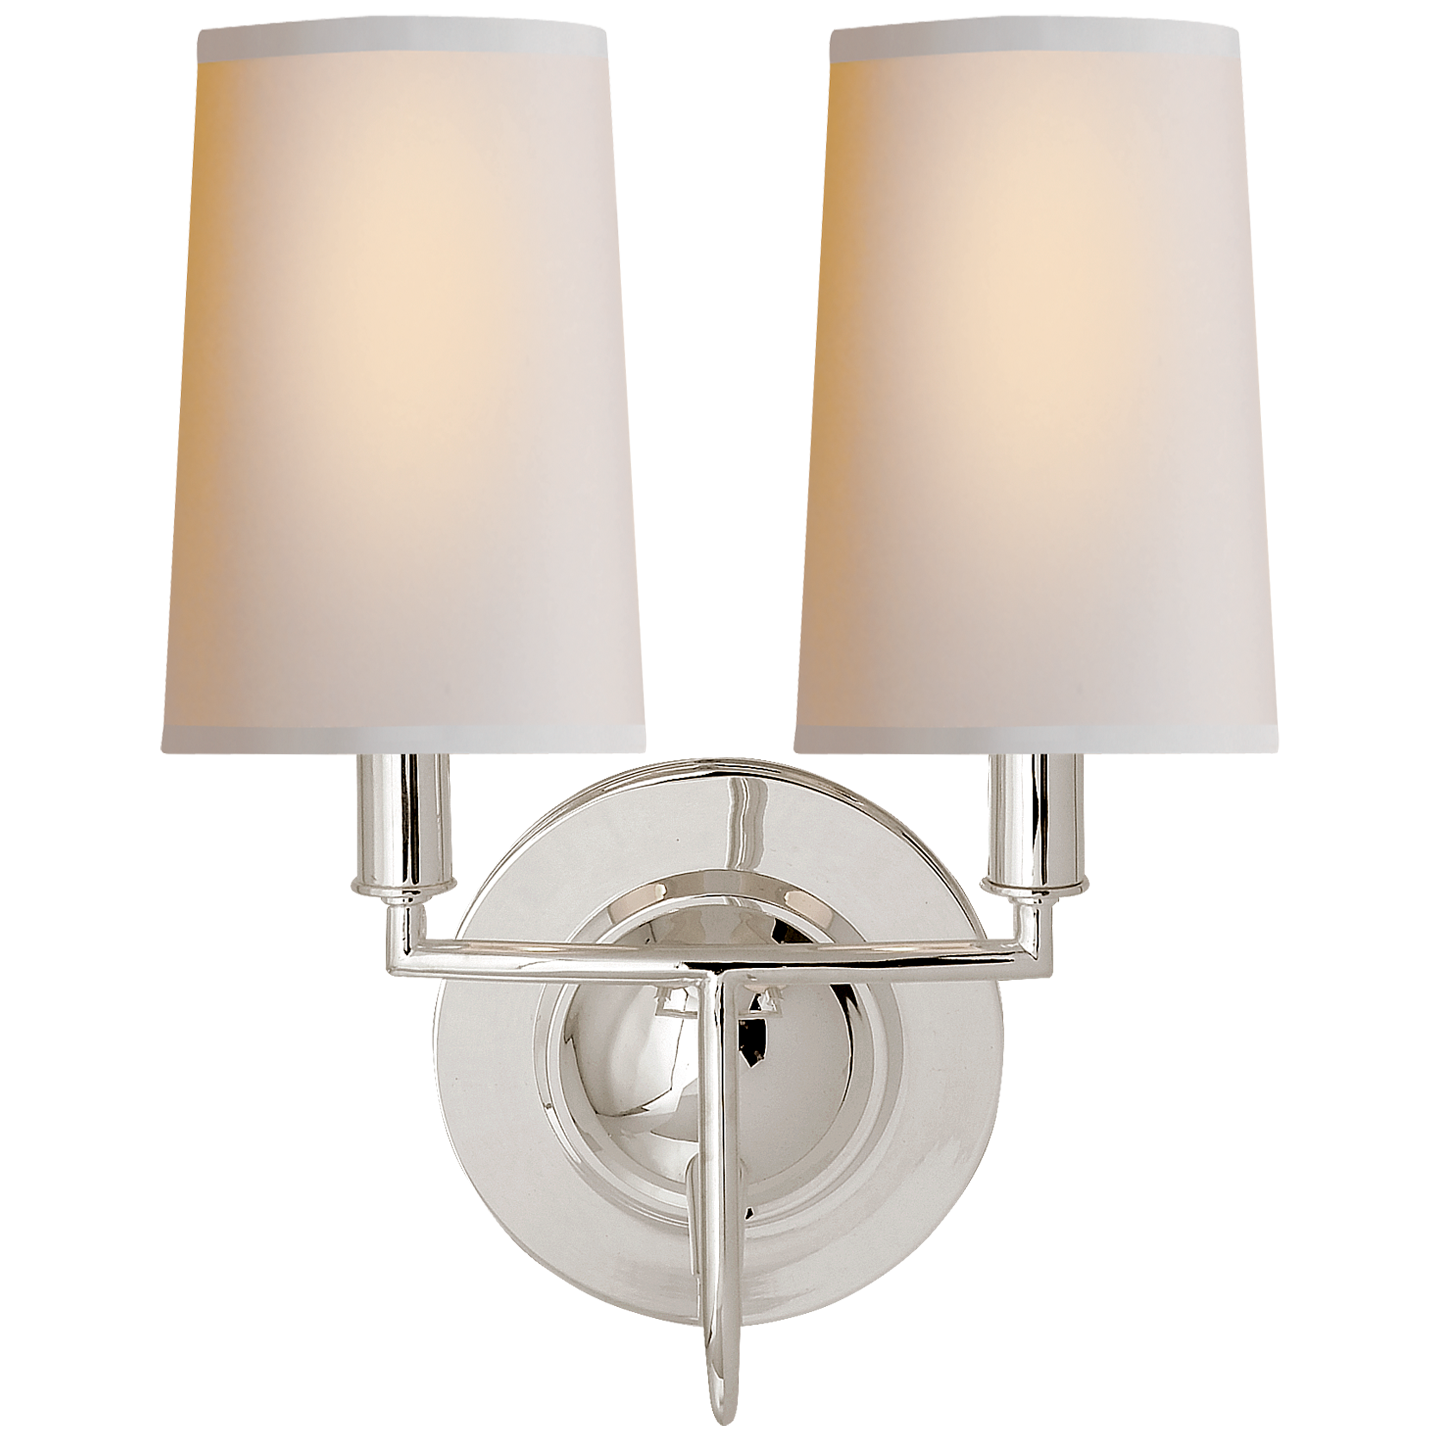 Elkins Double Sconce Visual Comfort Lighting Sconces Double Wall Sconce